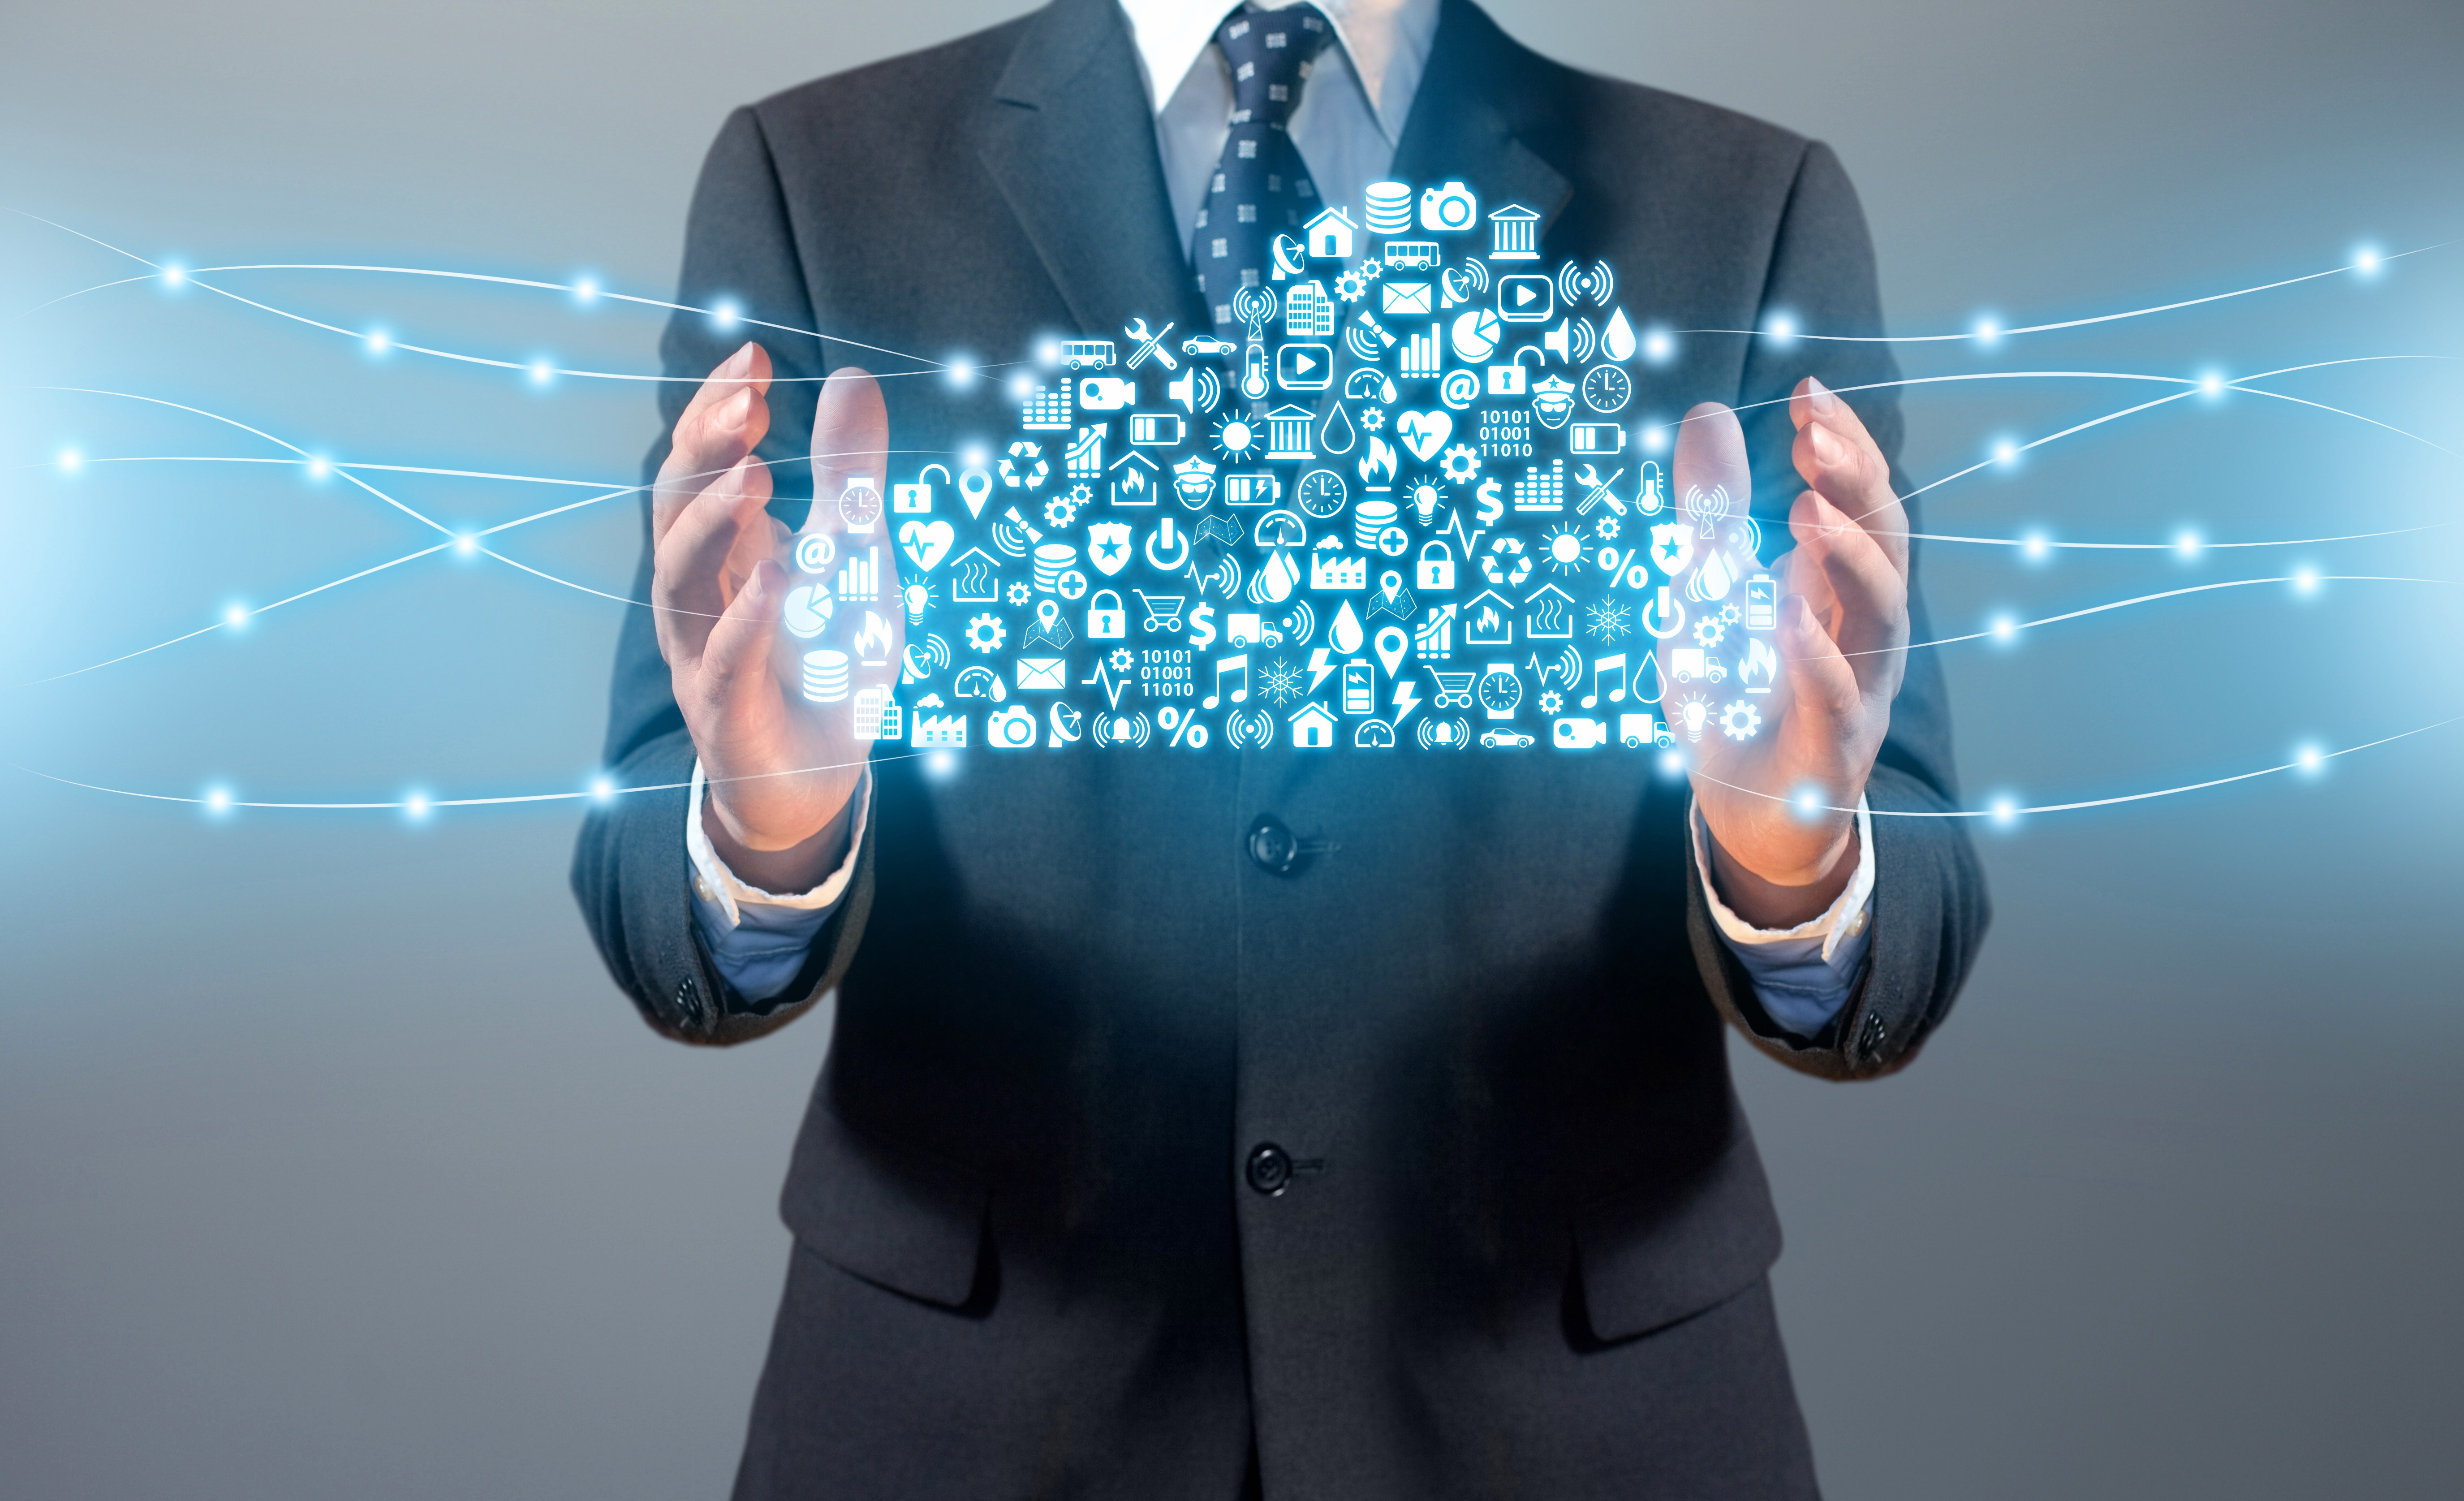 Businessman-and-cloud-computing-shape-with-services,-icons-and-activities-482888864_5500x3350 (1).jpeg